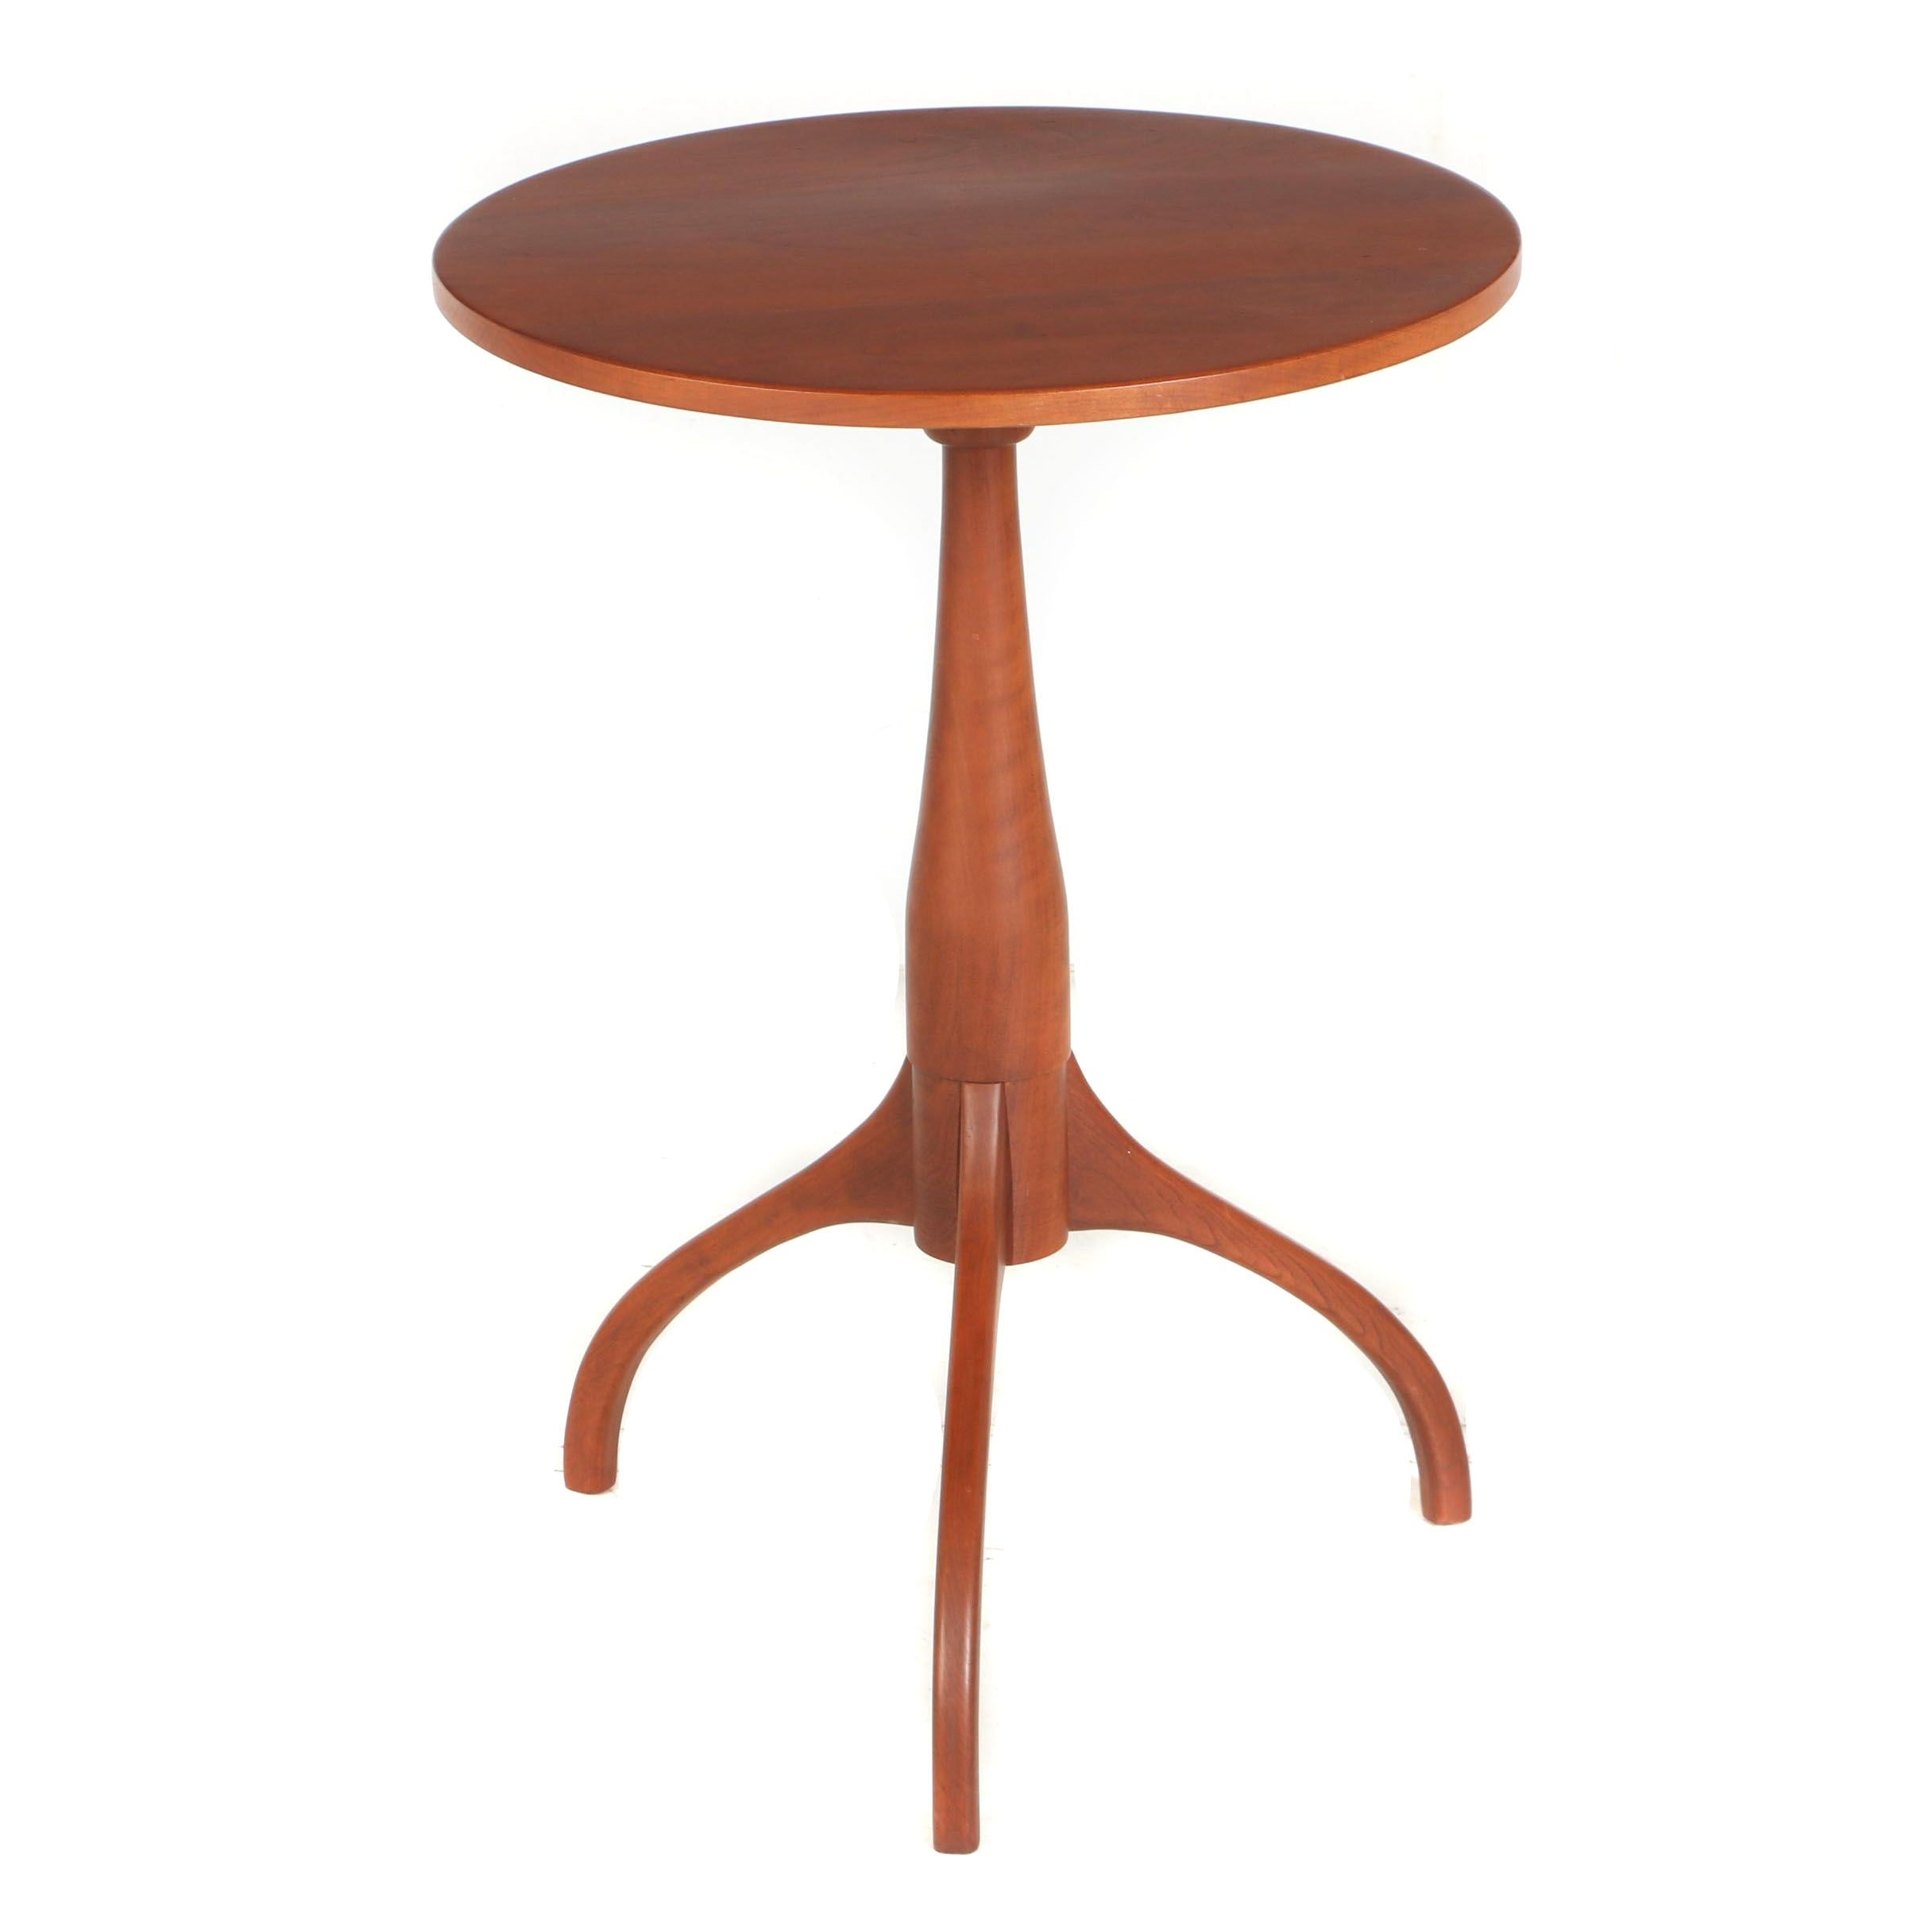 Contemporary Federal Style Cherrywood Bench-Made Tripod Table